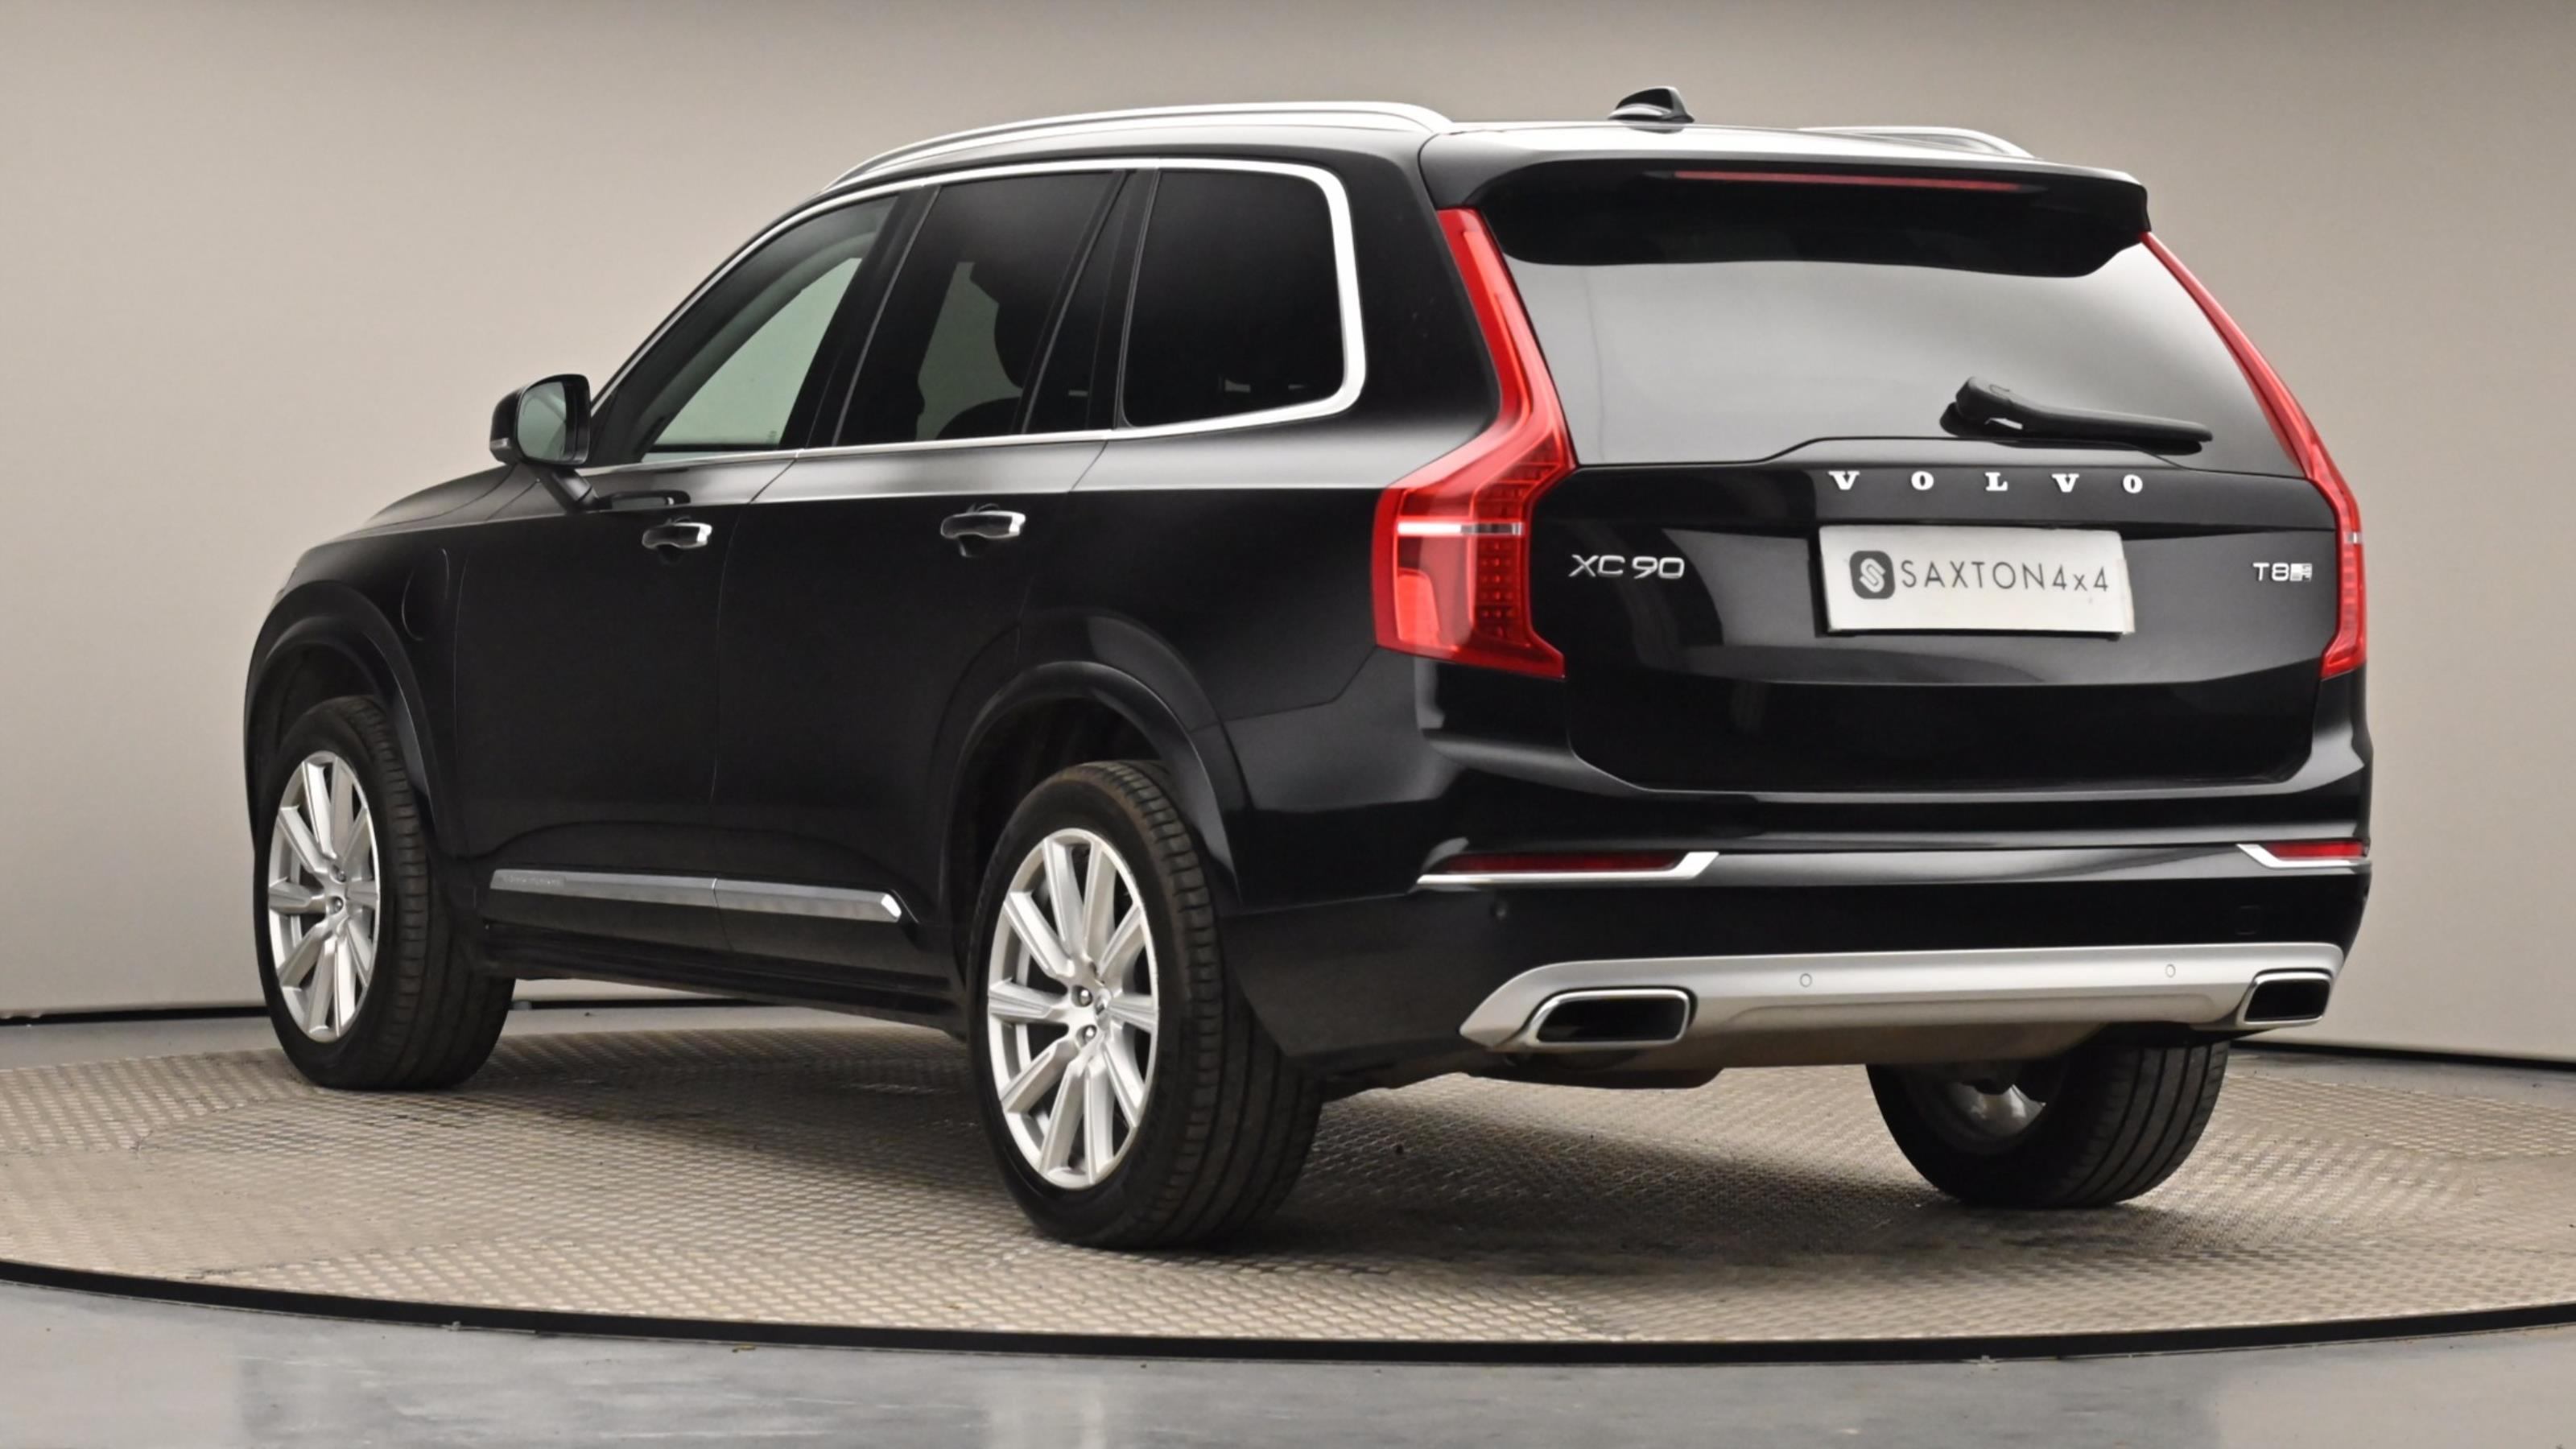 2015 Volvo Xc90 For Sale >> Used 4x4 Volvo For Sale Saxton 4x4